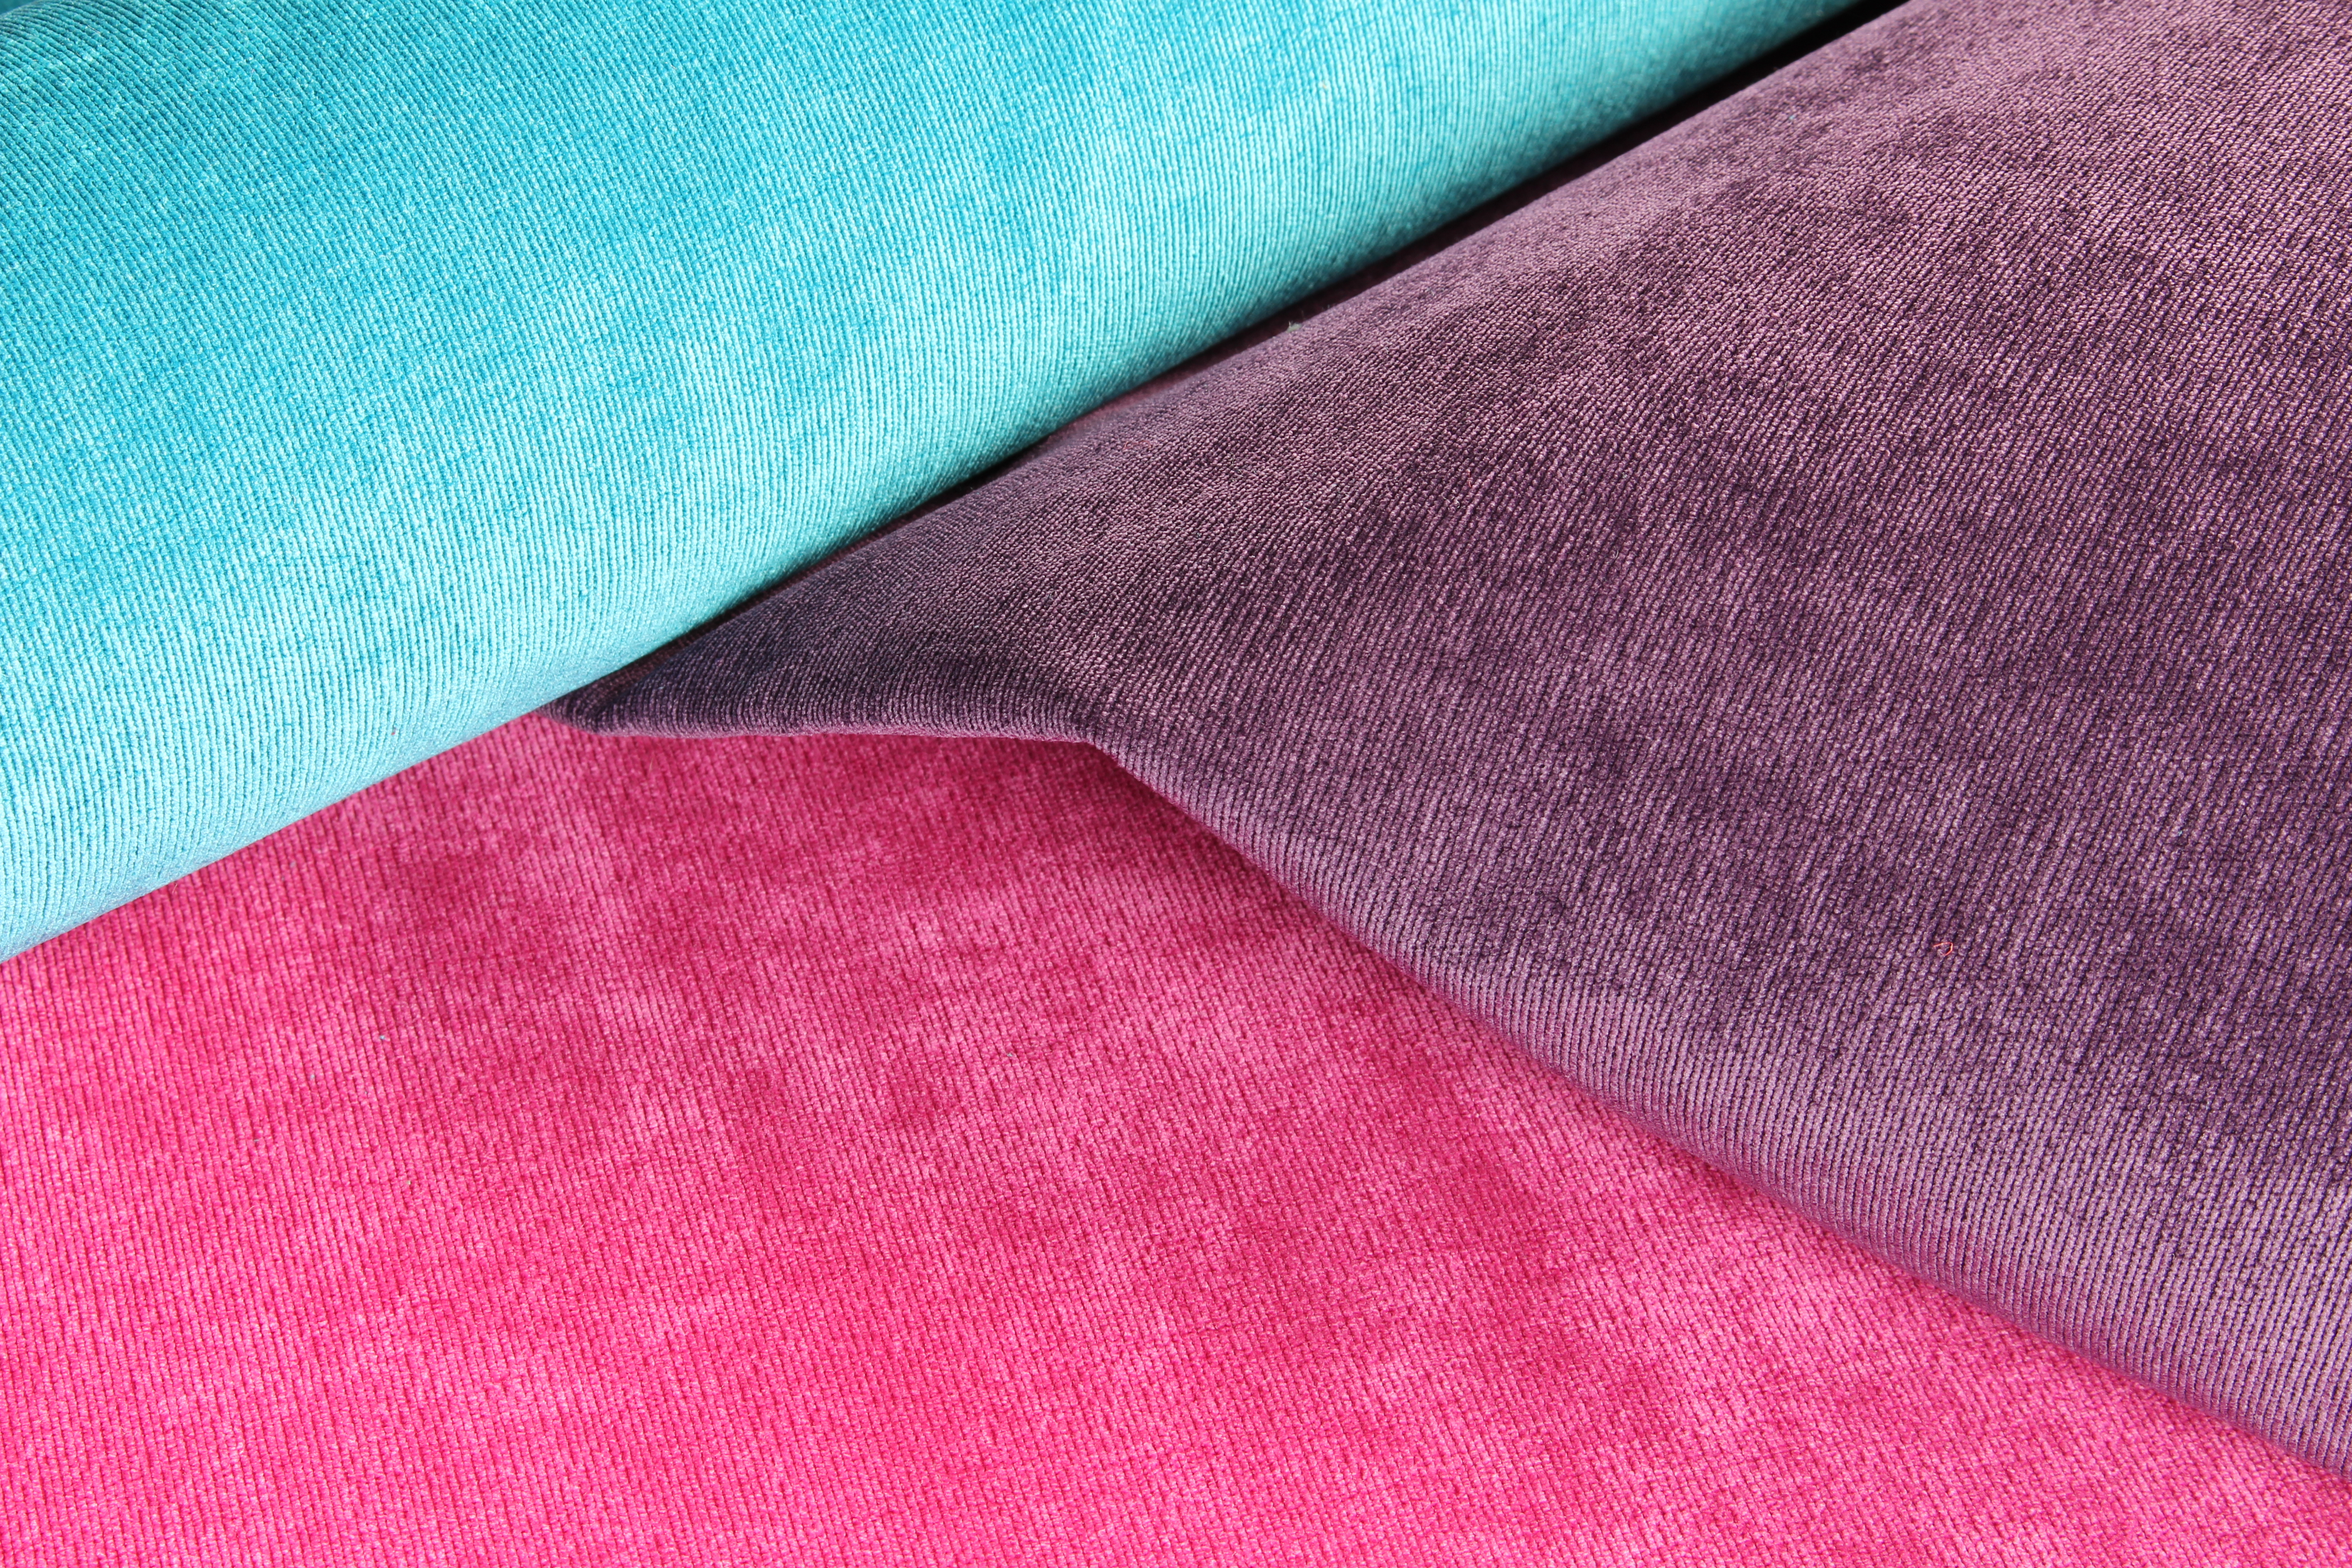 covertex fabrics